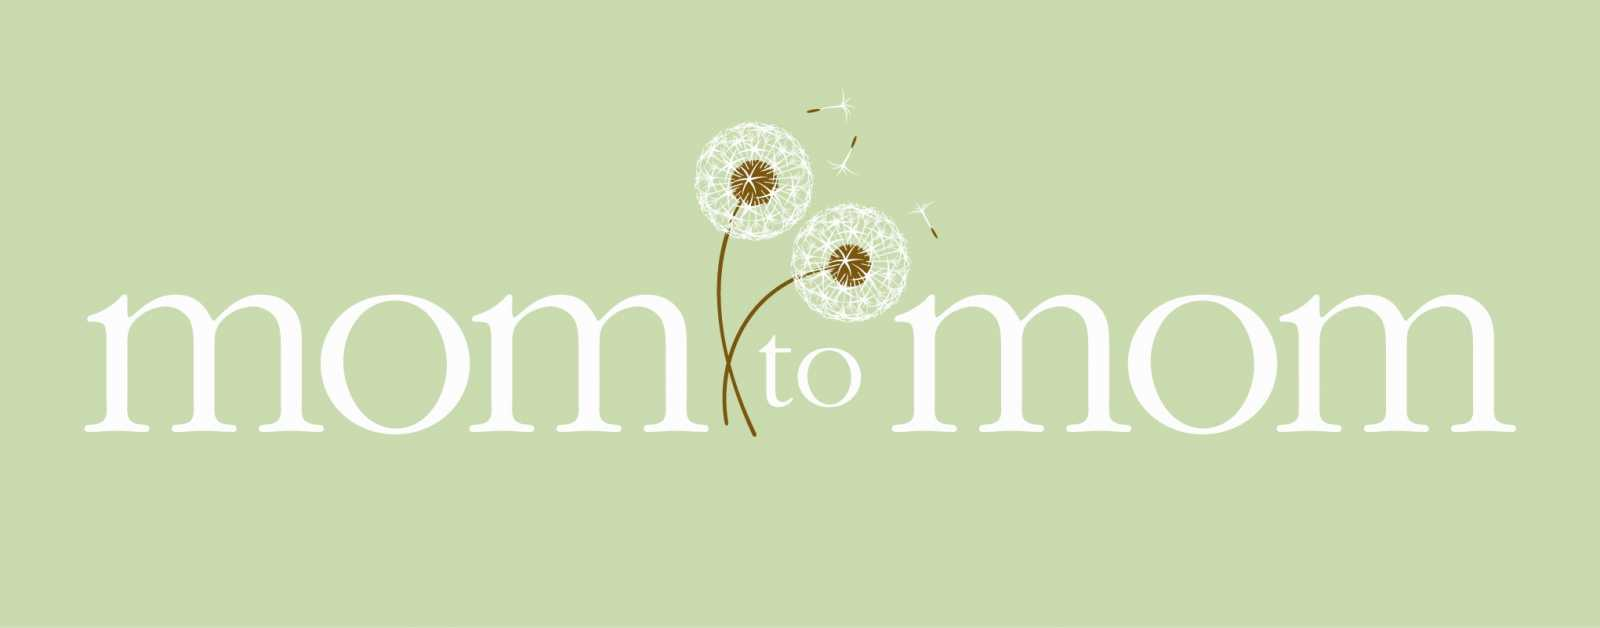 Image result for mom to mom